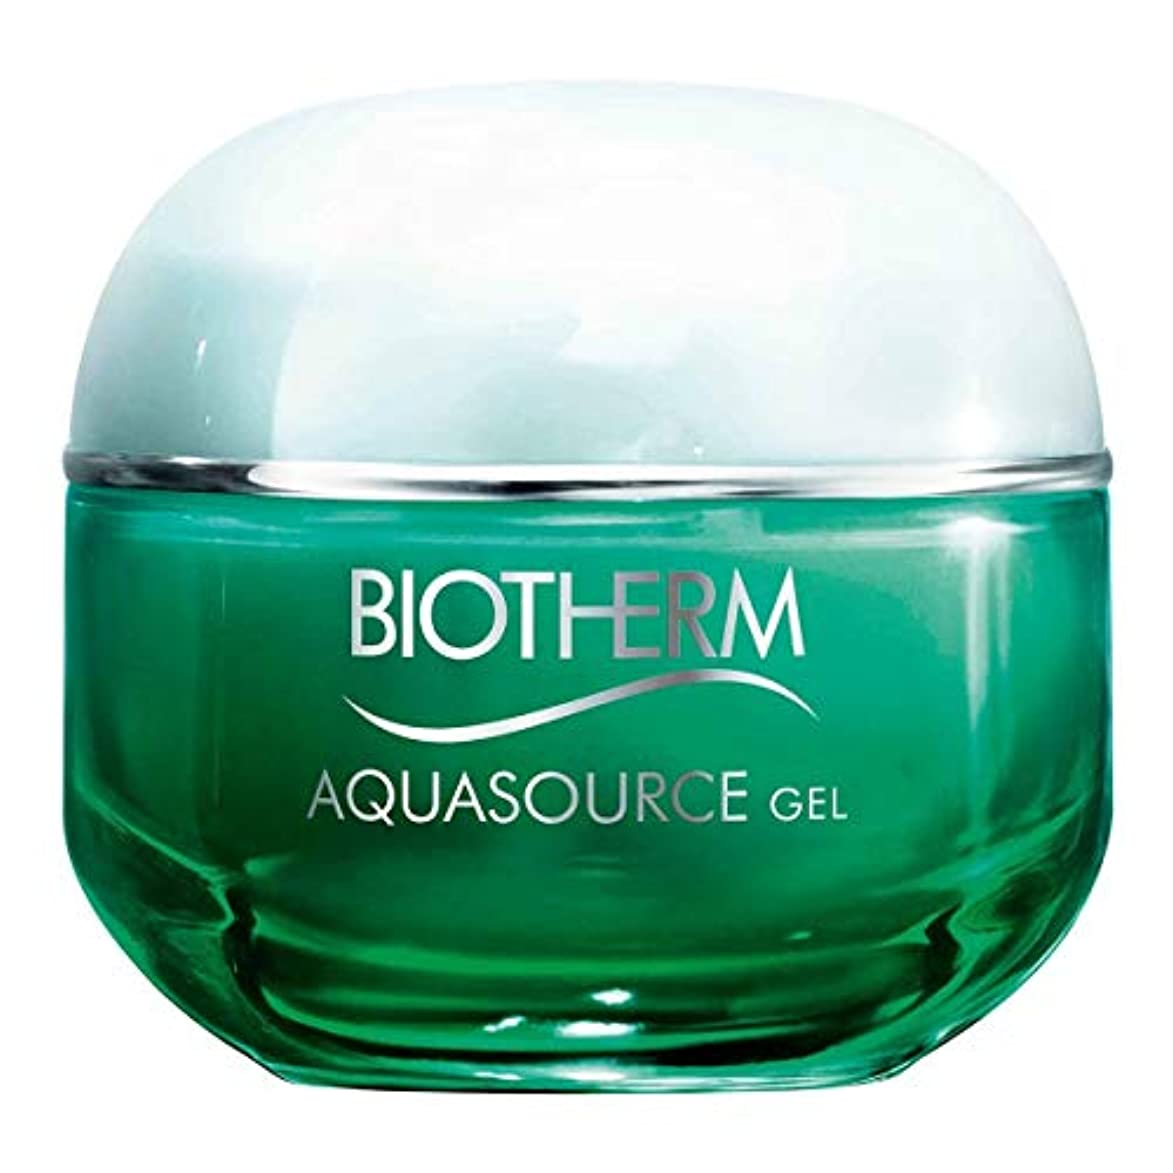 入手しますマニフェストパーセントAquasource Gel Intense Regenerating Moisturizing